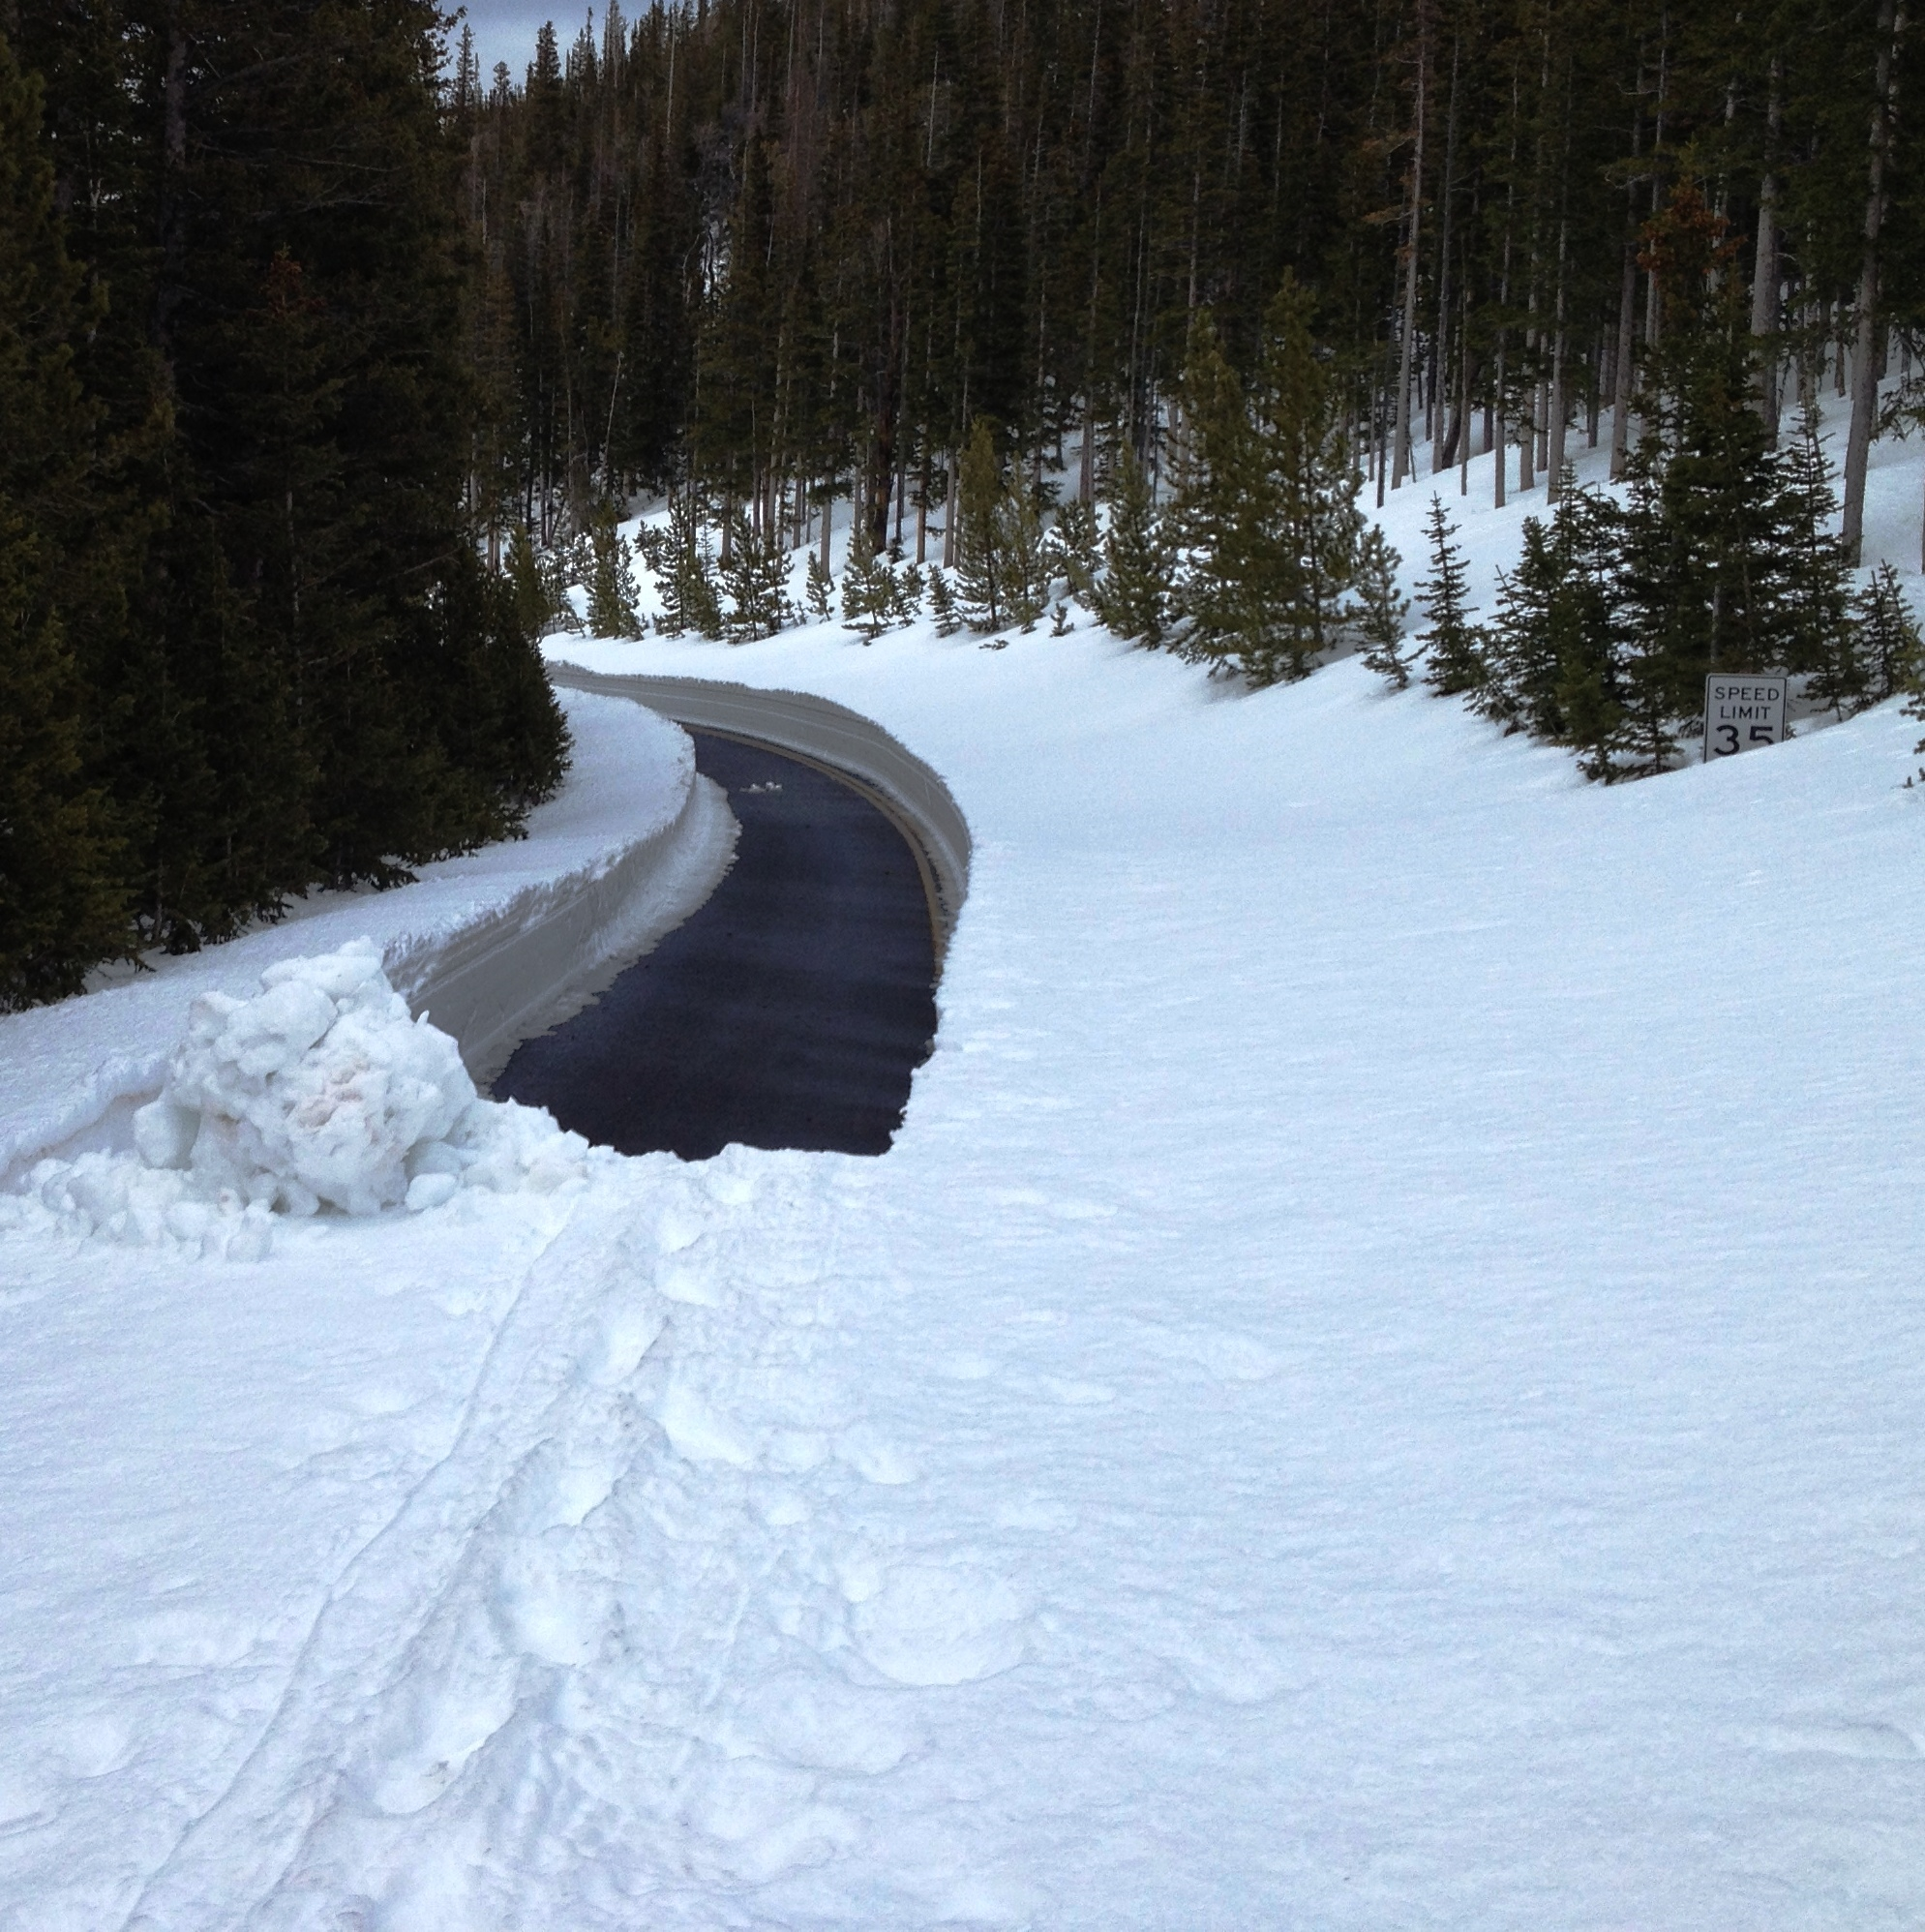 Trail Ridge Road, plowed